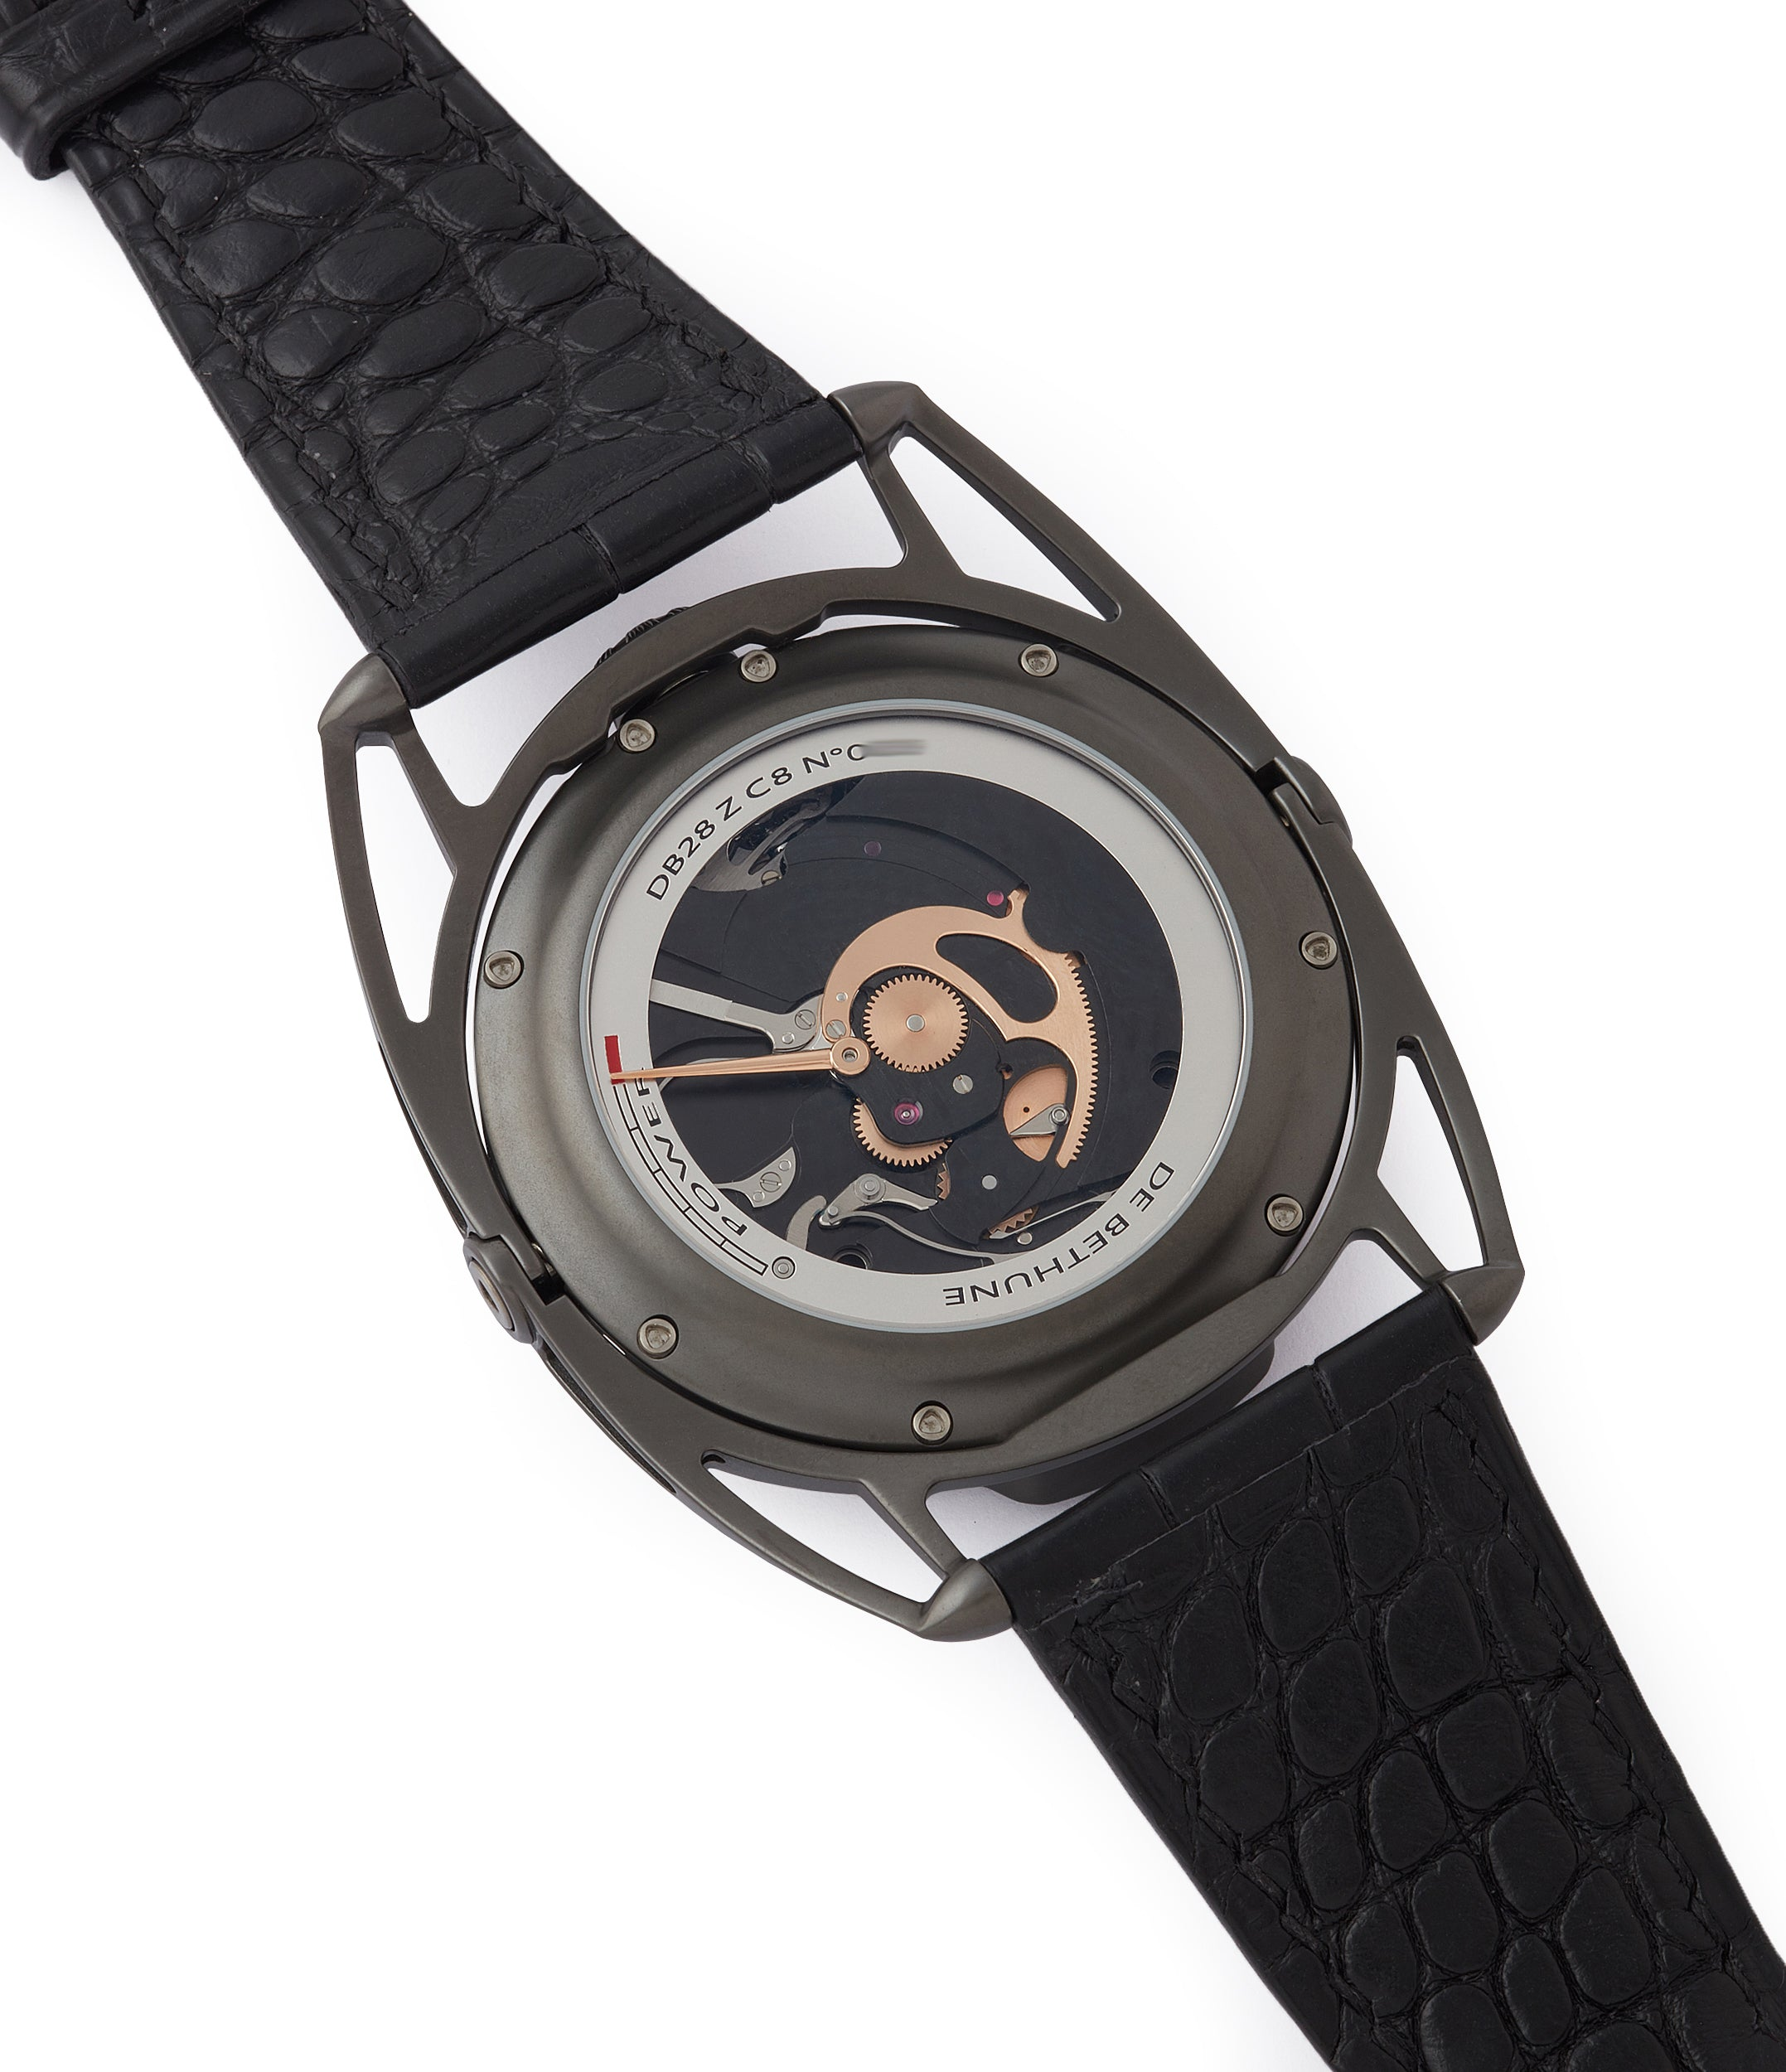 buy pre-owned De Bethune DB28 Dark Shadows independent watchmaker for sale online at A Collected Man London UK specilaist of rare watches